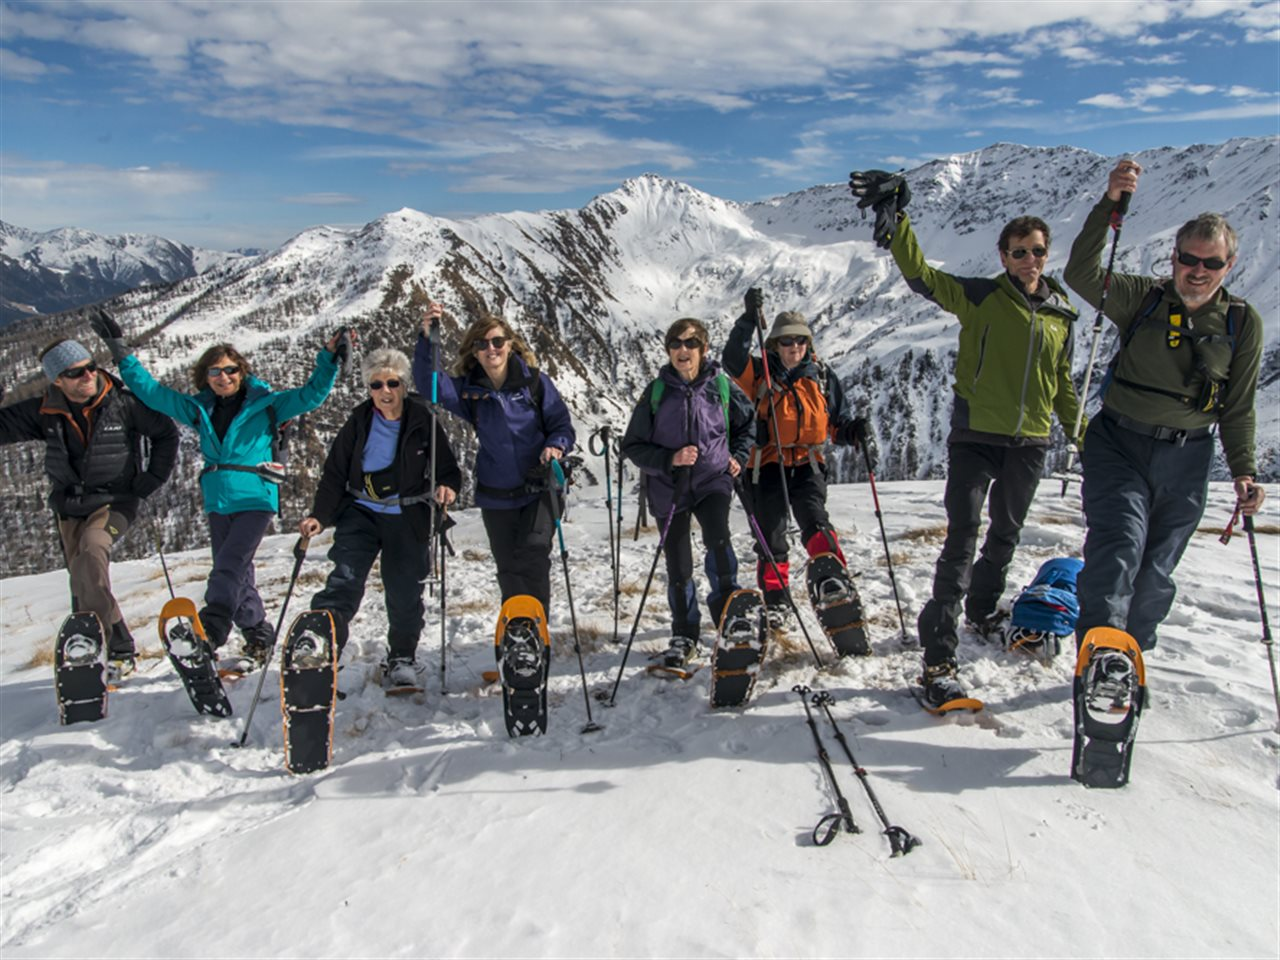 Bild zu 19-0051-01: English Speakers_GetReady Snowshoe Training